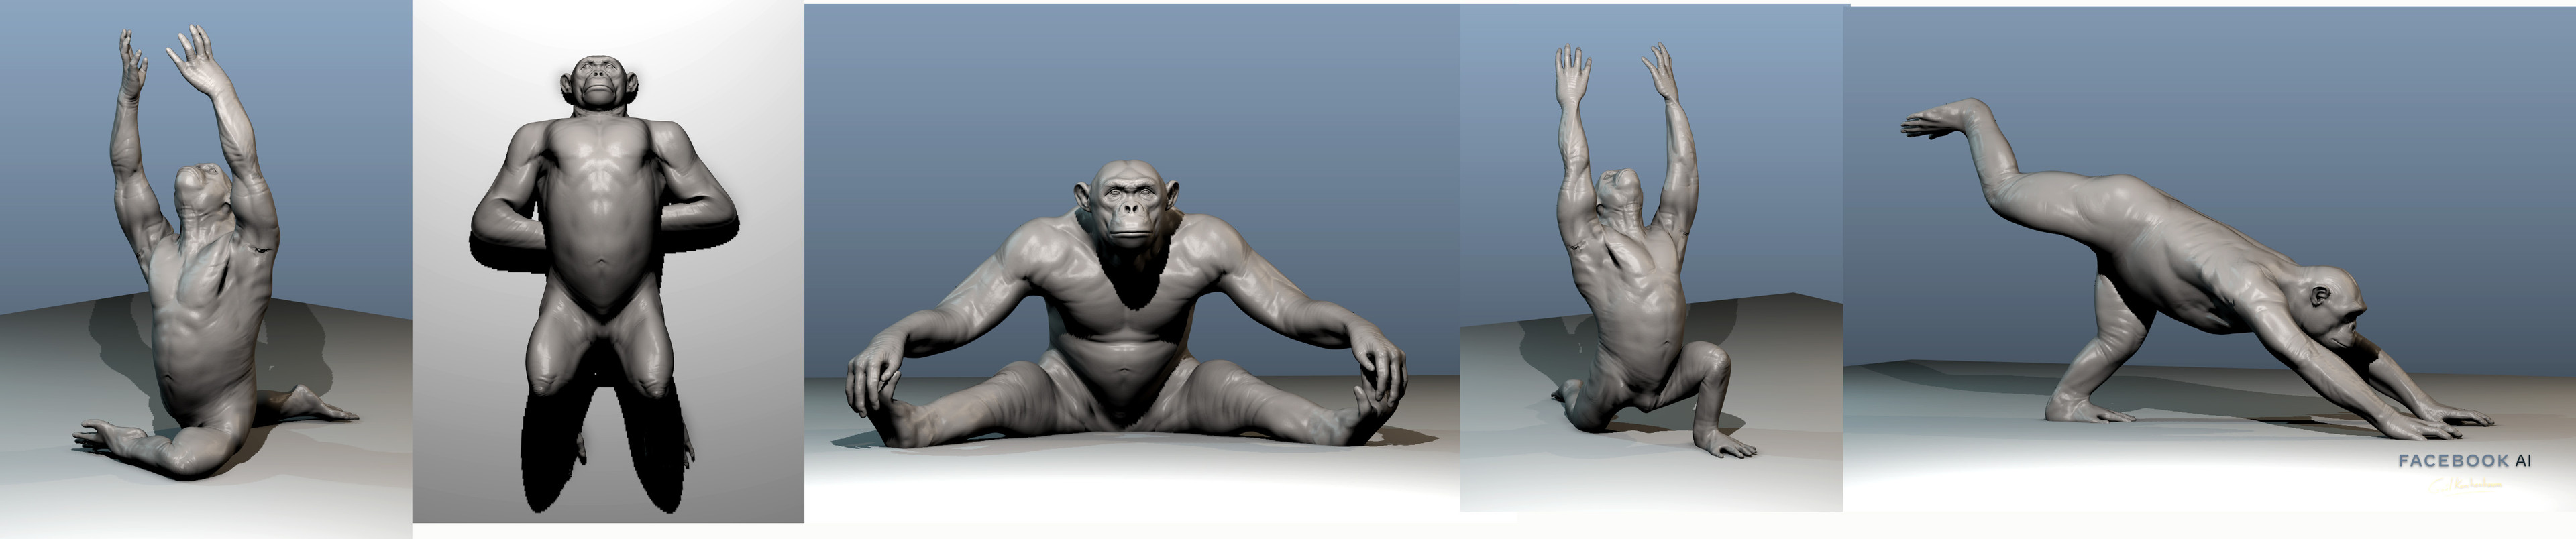 These poses have been used to helped to learn ROM (Range Of Motion) from 3D